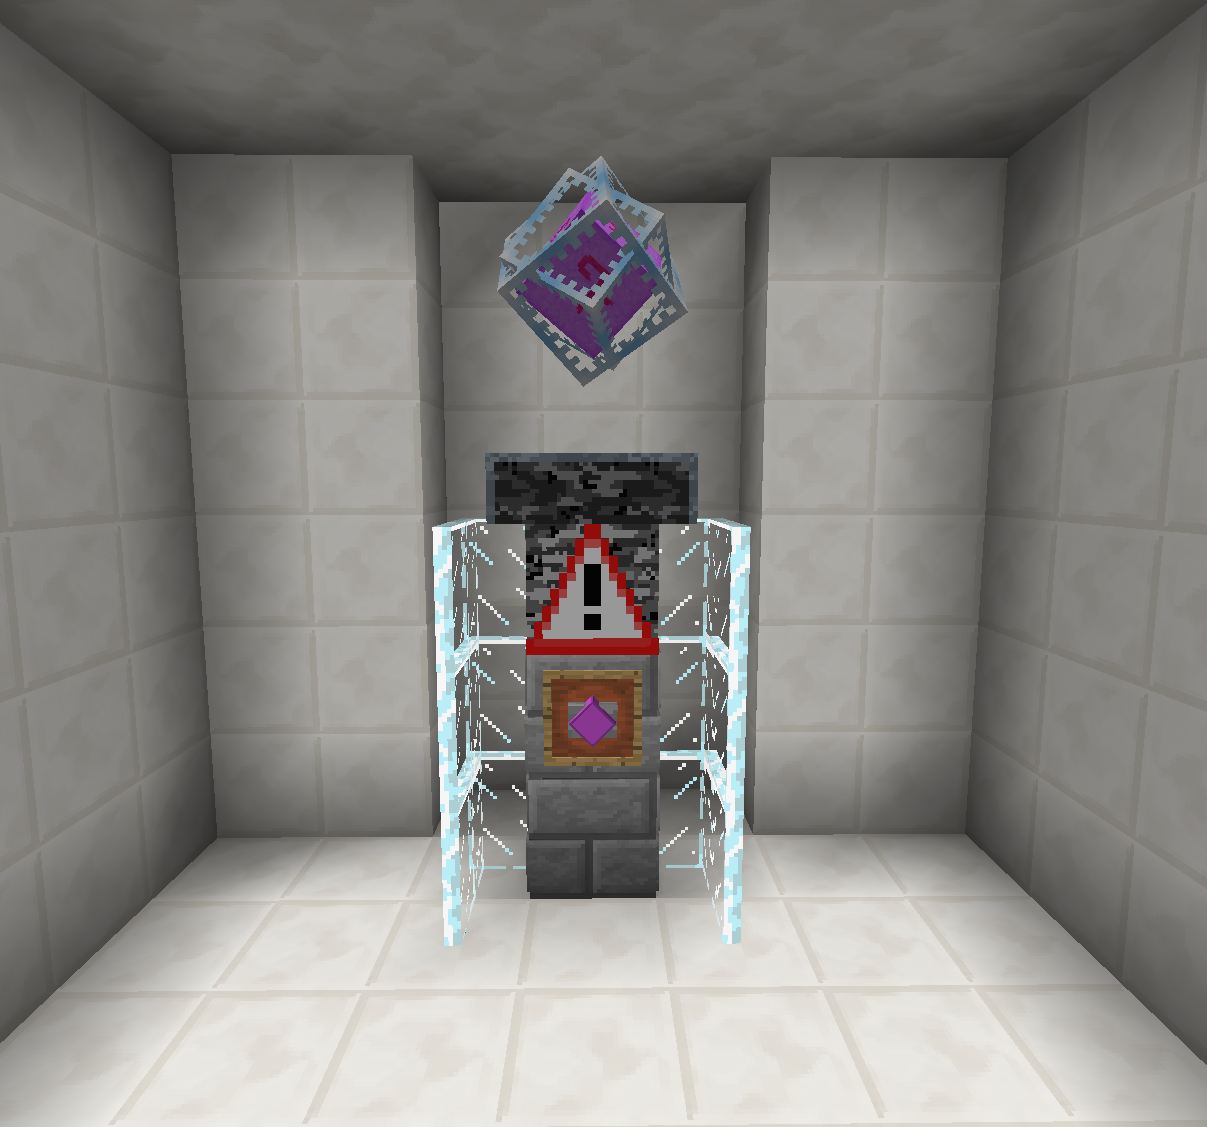 things to do with ender crystals - Creative Mode - Minecraft: Java